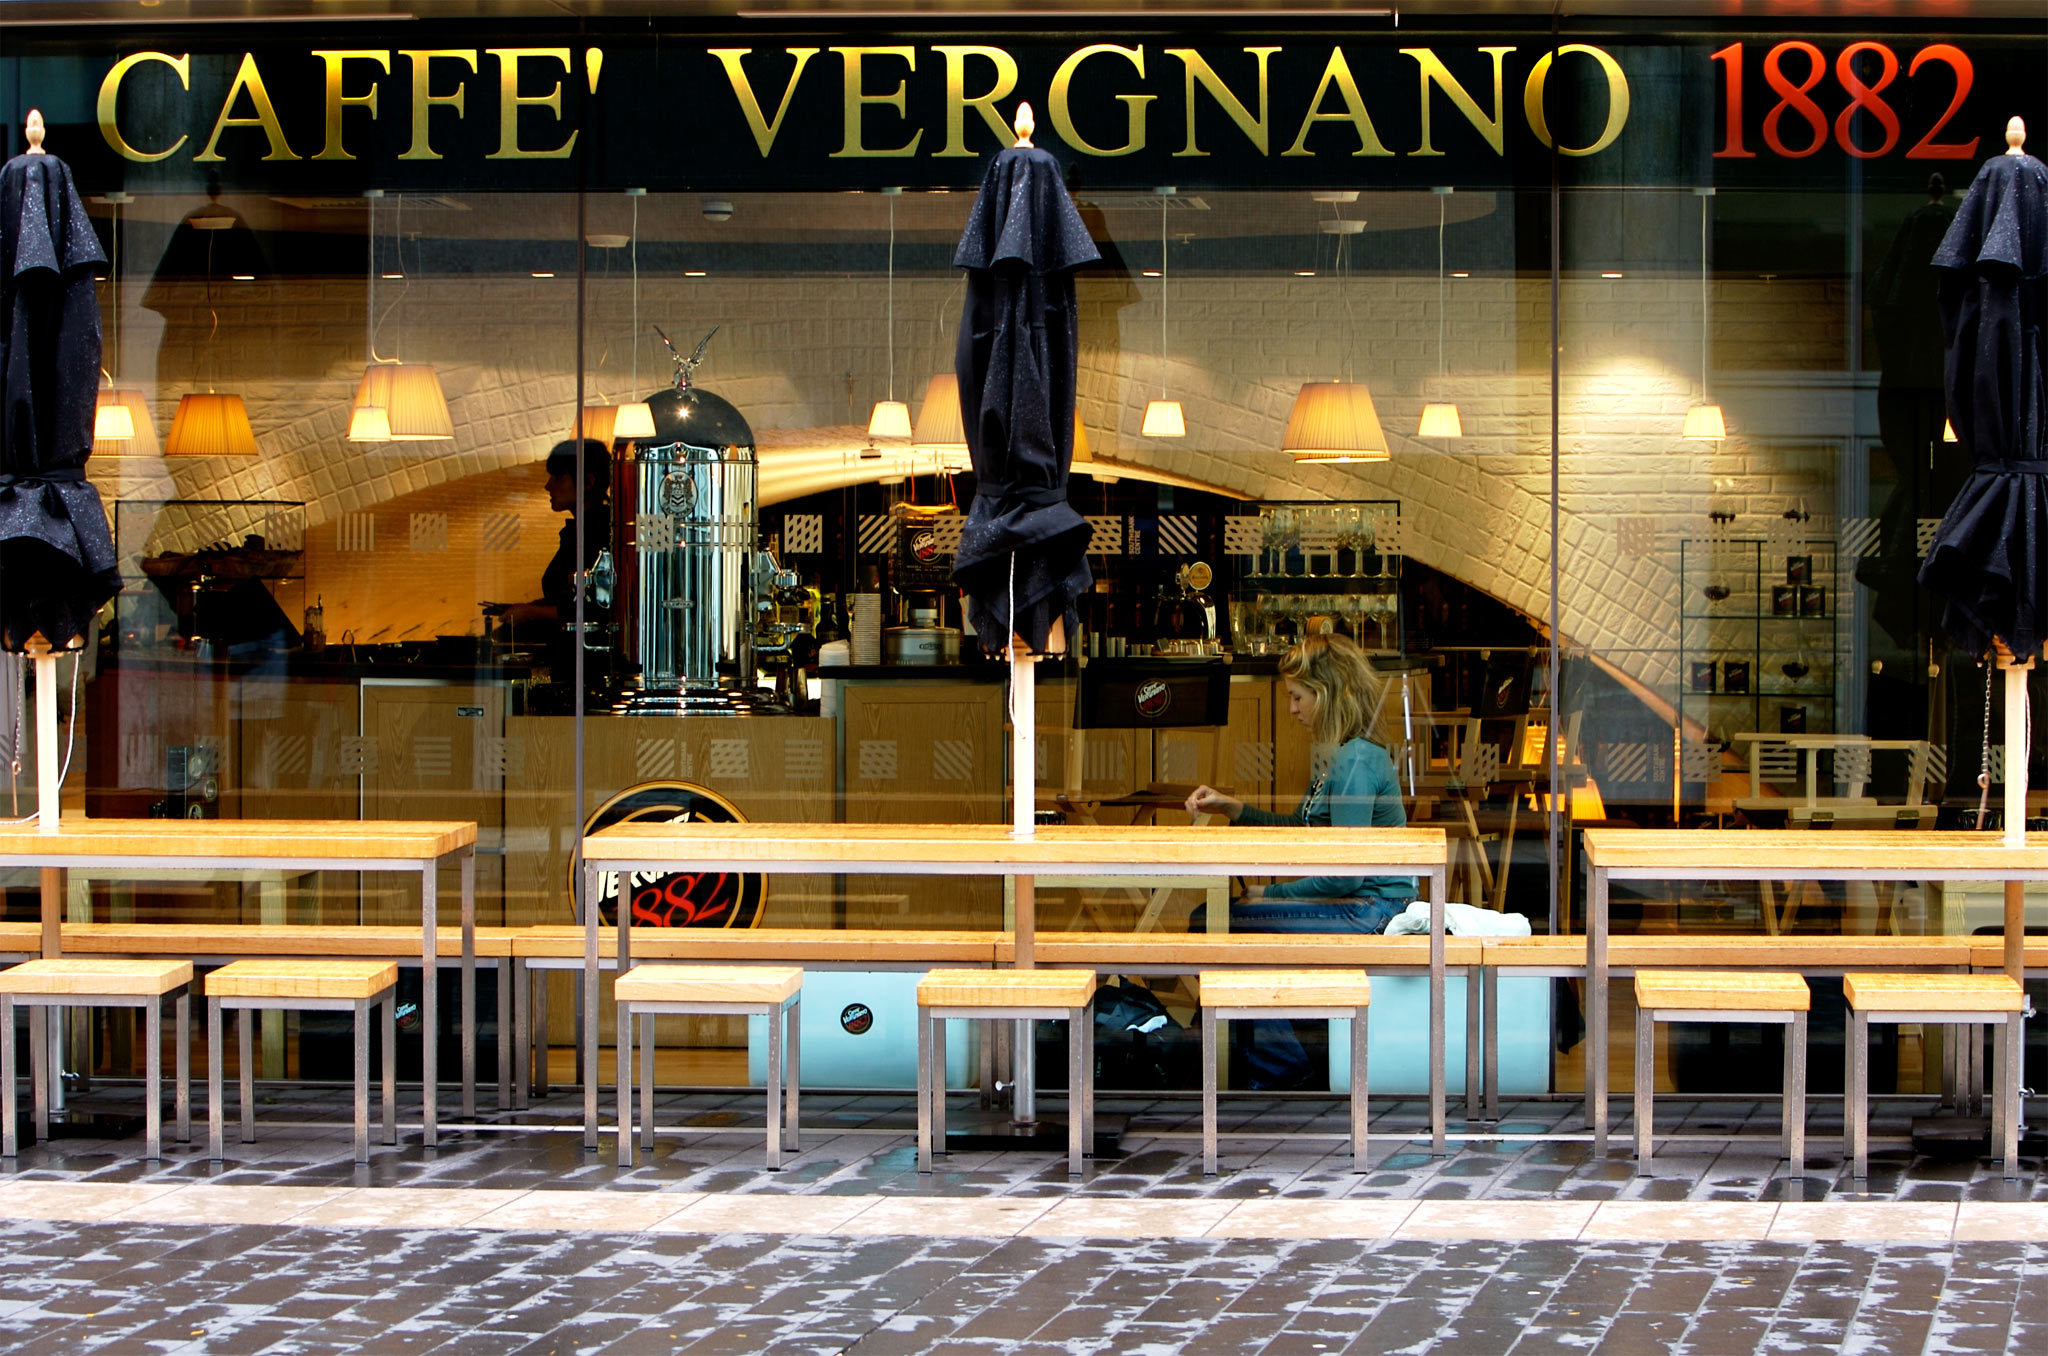 Hot chocolate at Caffe Vergnano 1882